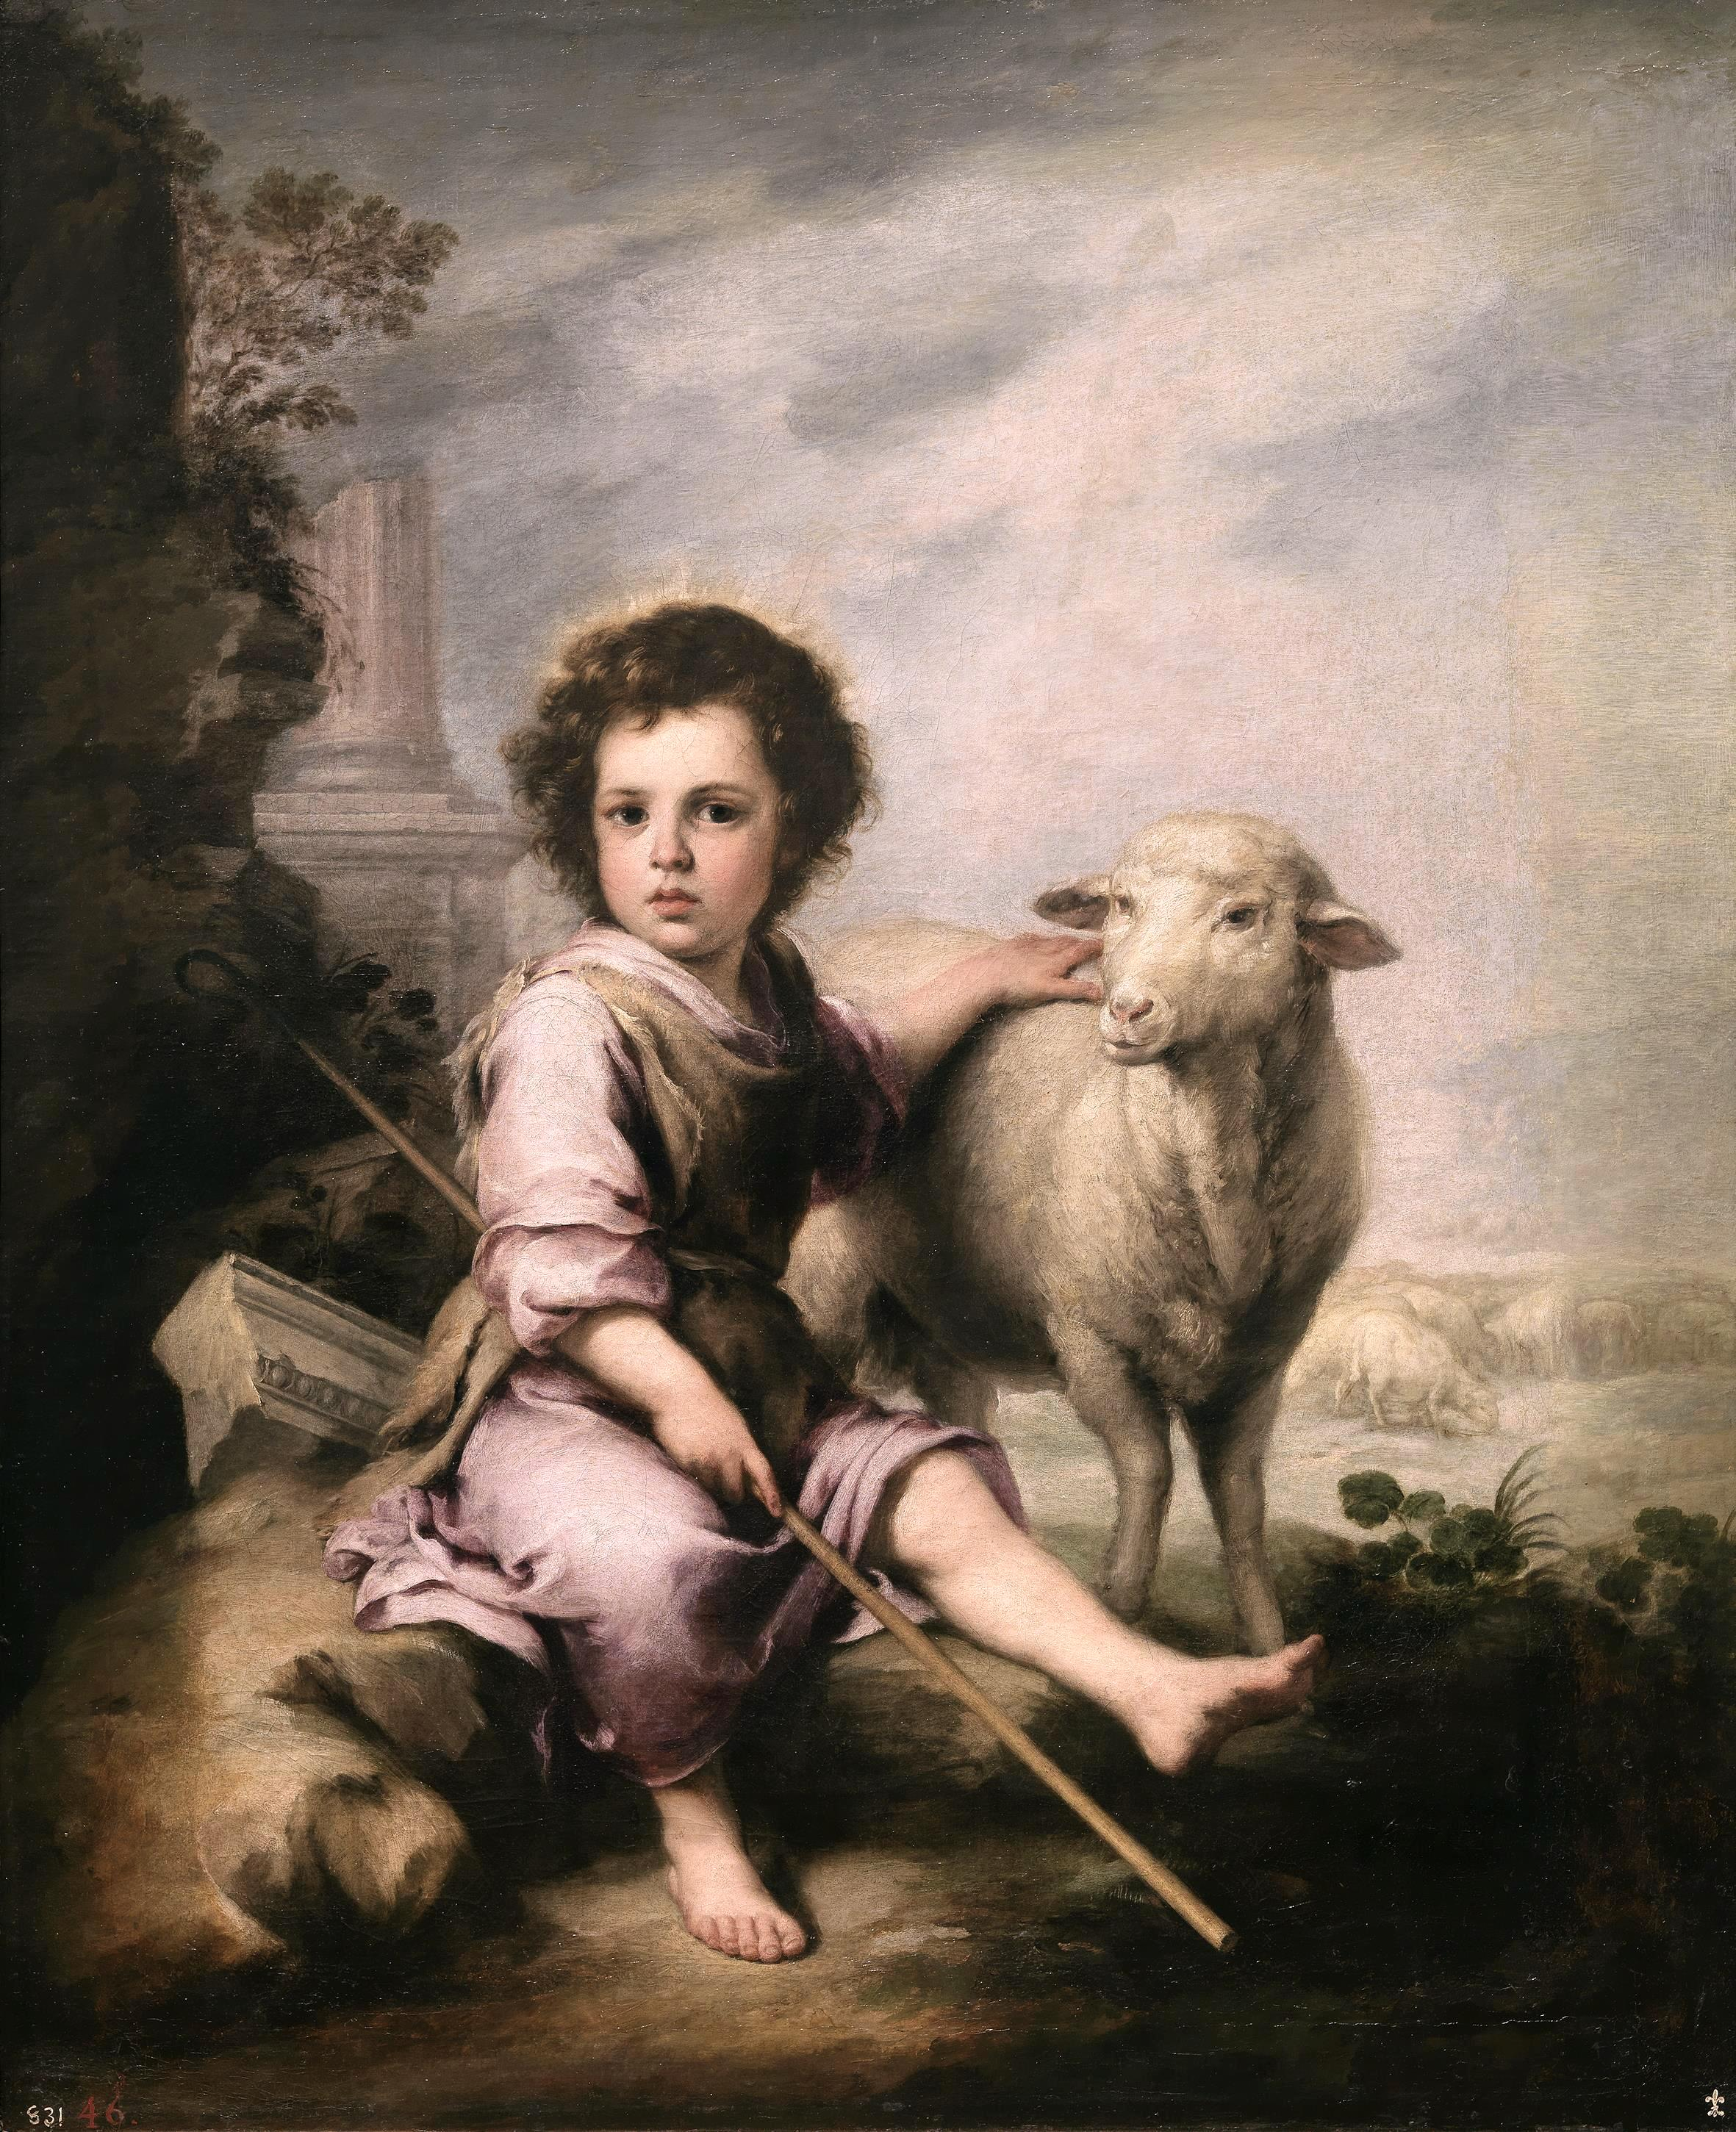 El Buen Pastor - The Good Shepherd, painted by Bartolomé Esteban Murillo (1617–1682) circa 1660 - one of the earliest depictions of a merino sheep